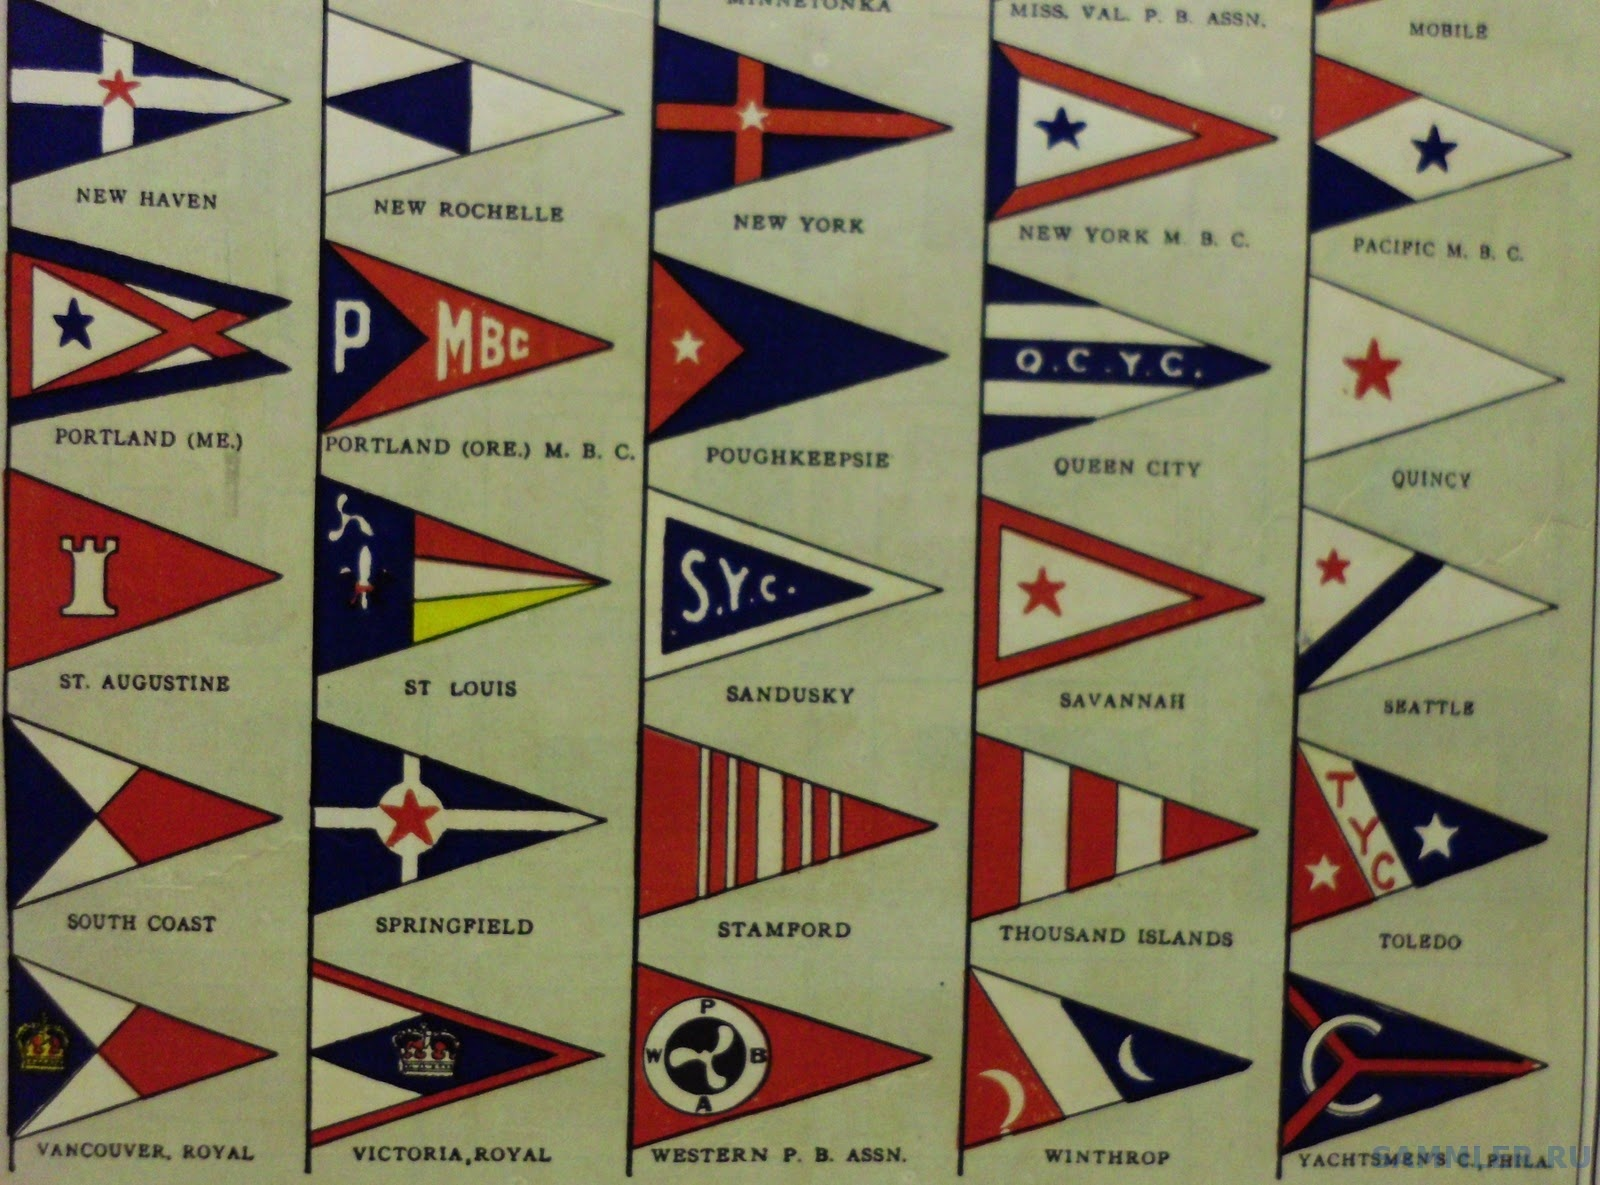 flags of yachtclub_027.jpg